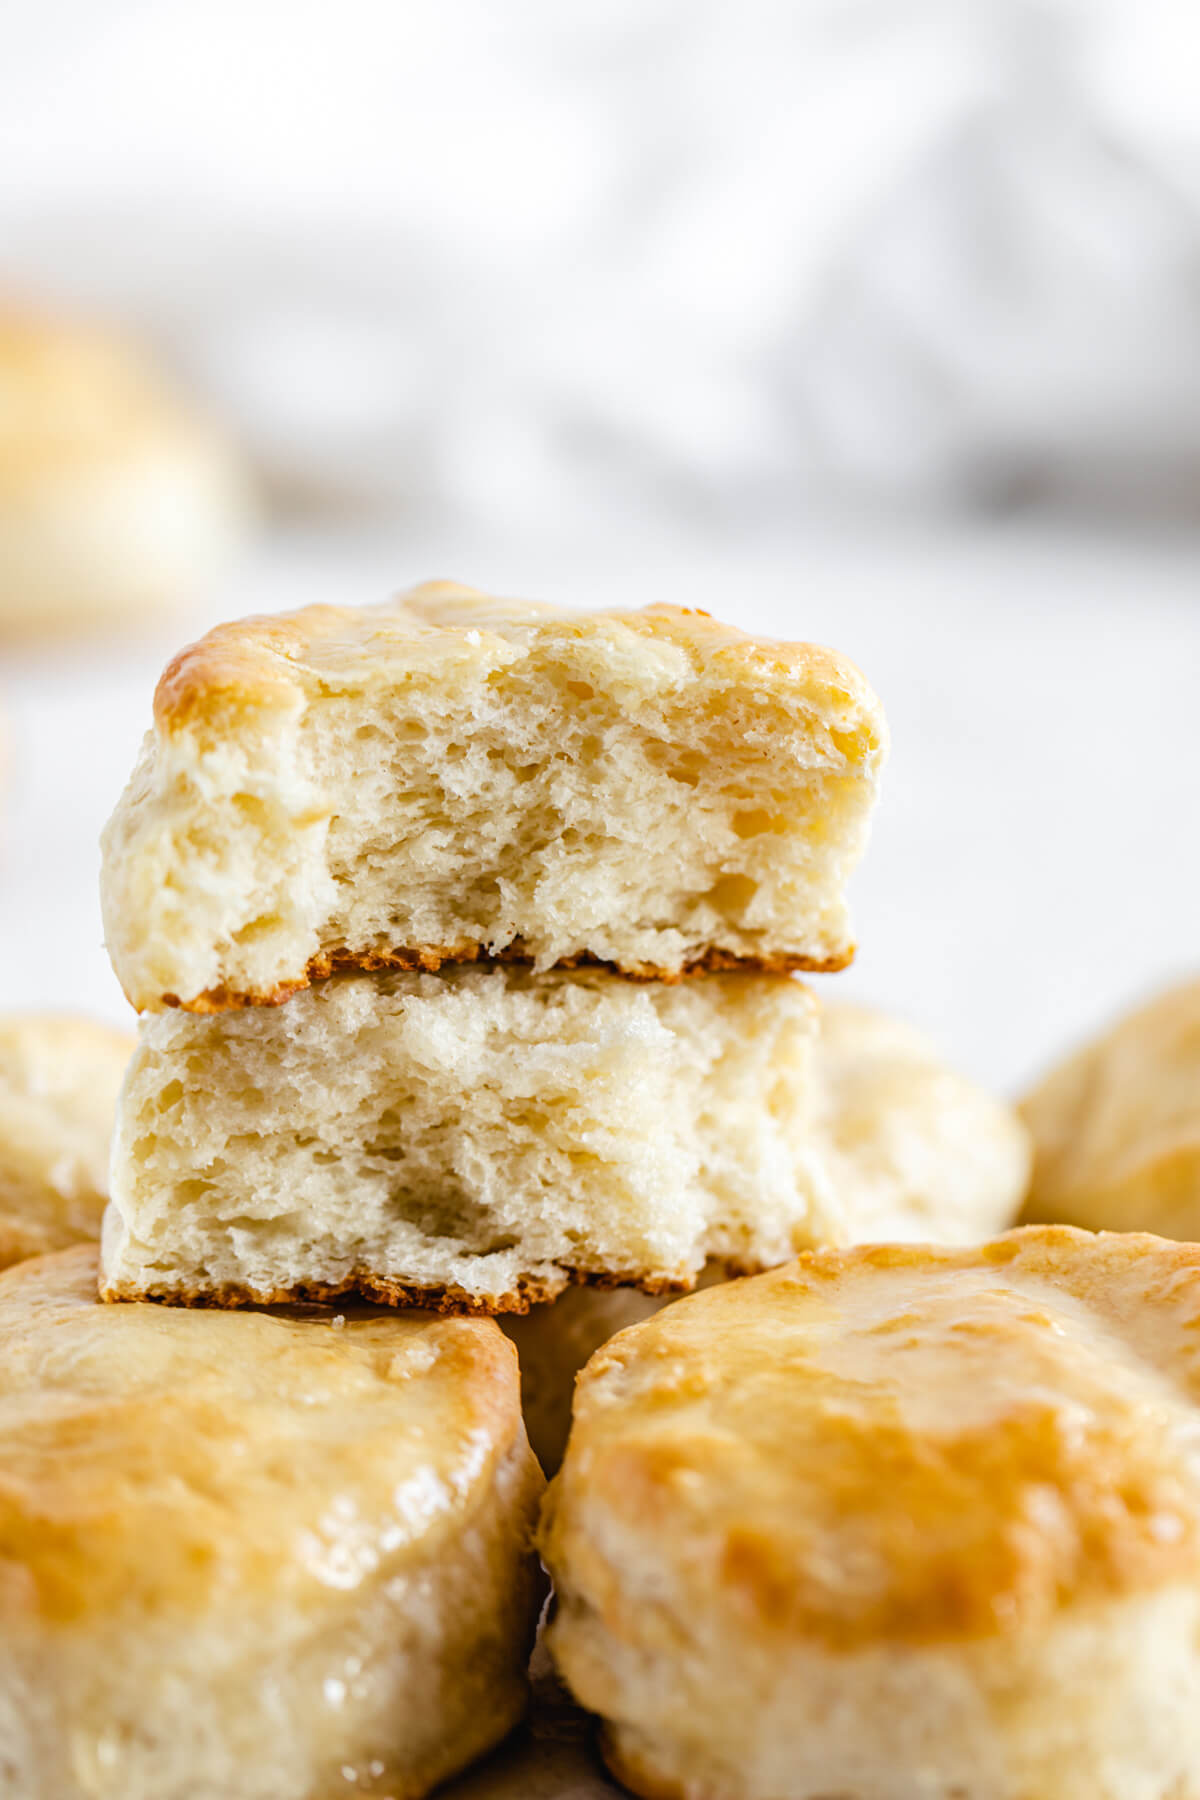 halved biscuits on top of whole biscuits